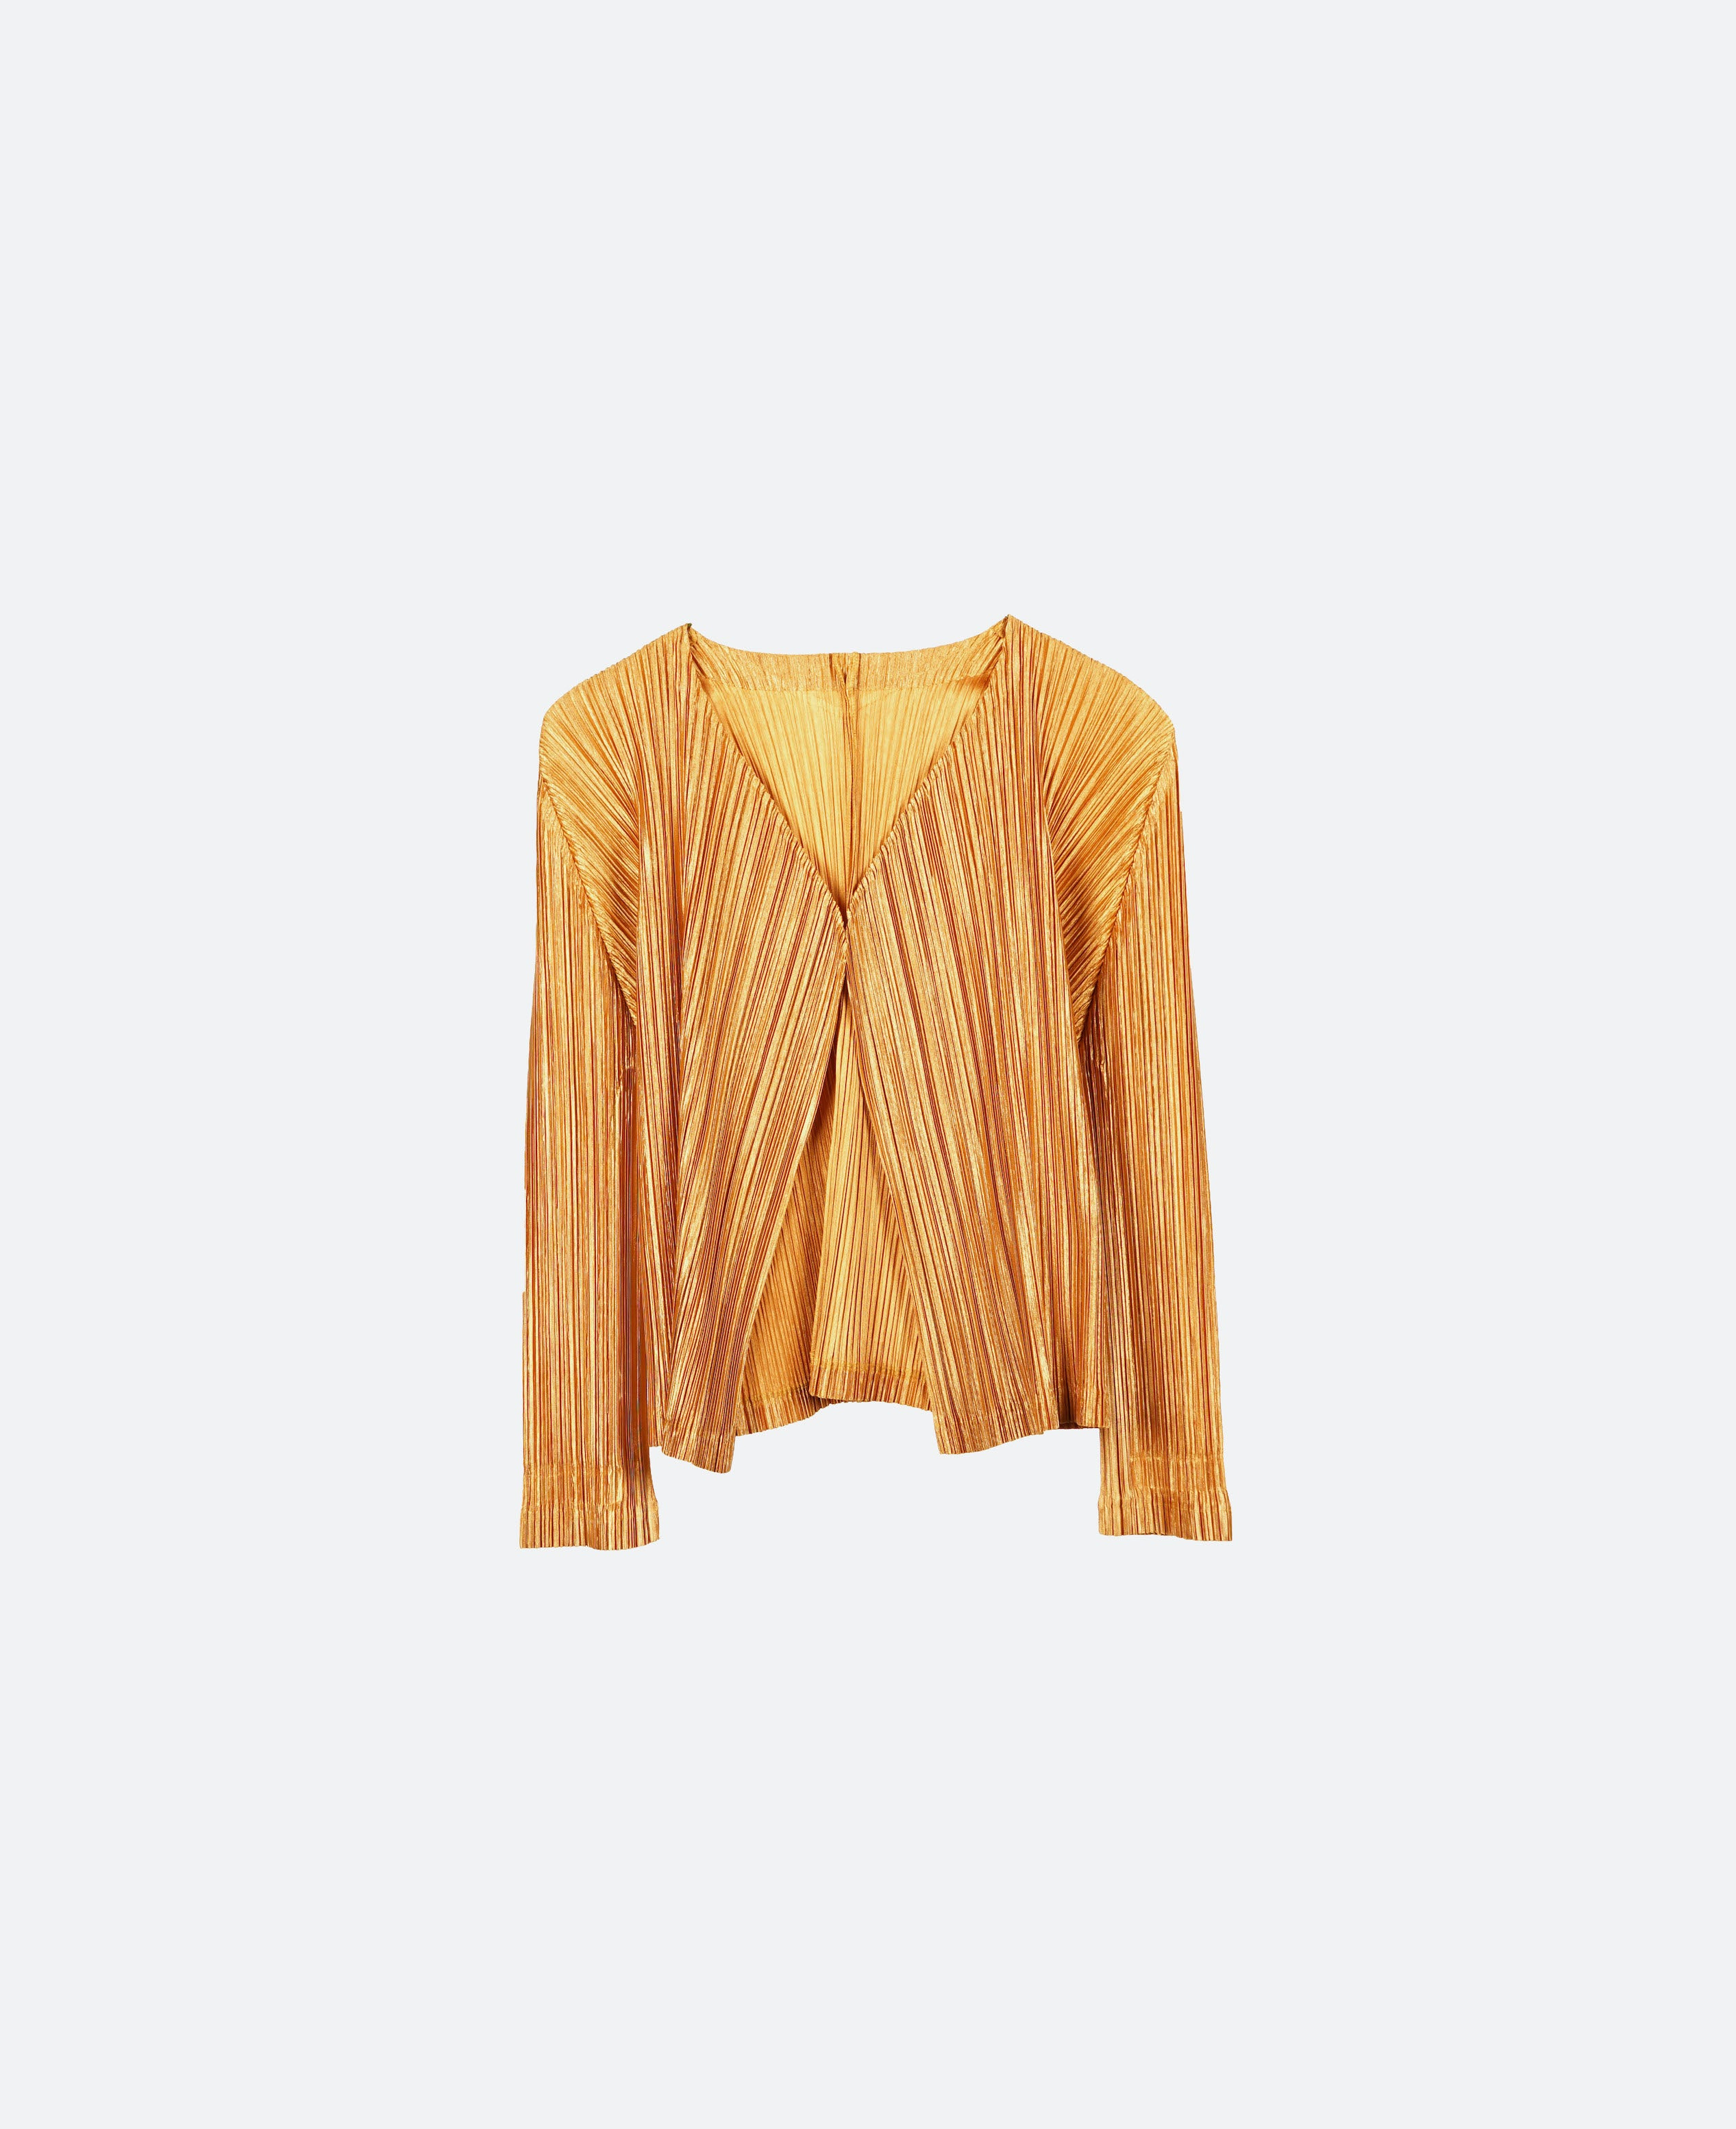 Issey Pleats Please Pleated Cardigan